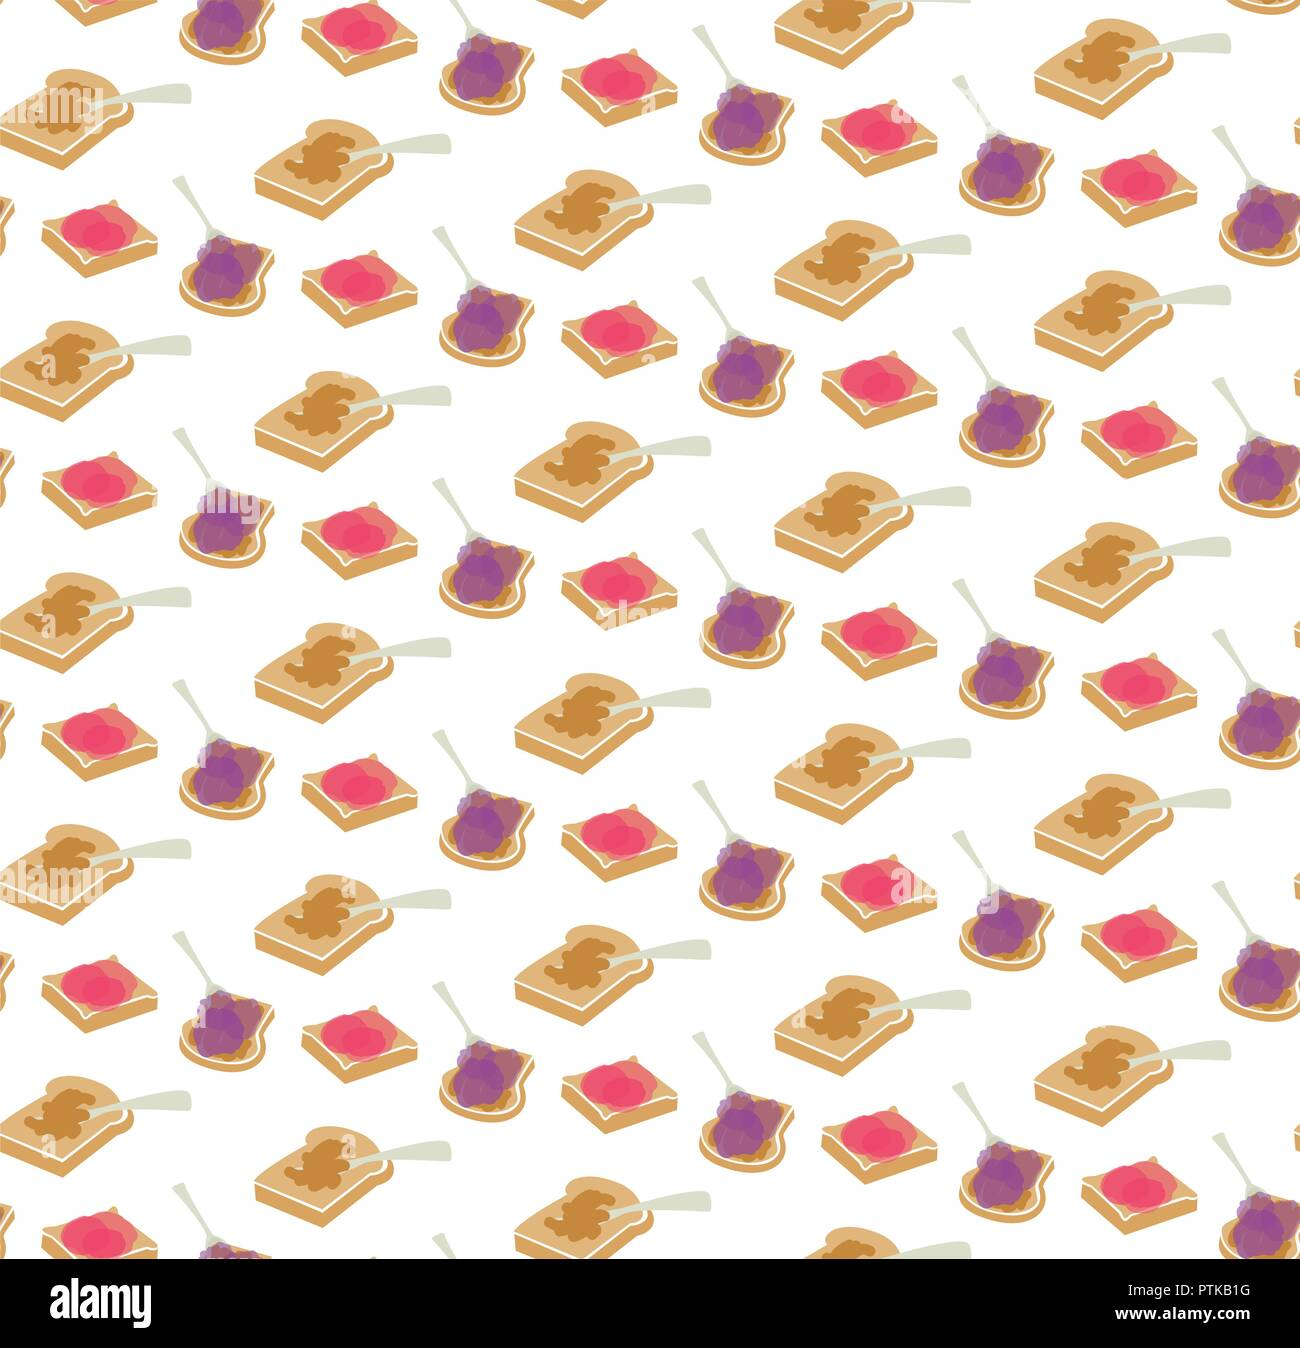 Vector peanut butter and jam seamless pattern background. Perfect for crafting projects, quilting, scrapbooking - Stock Vector